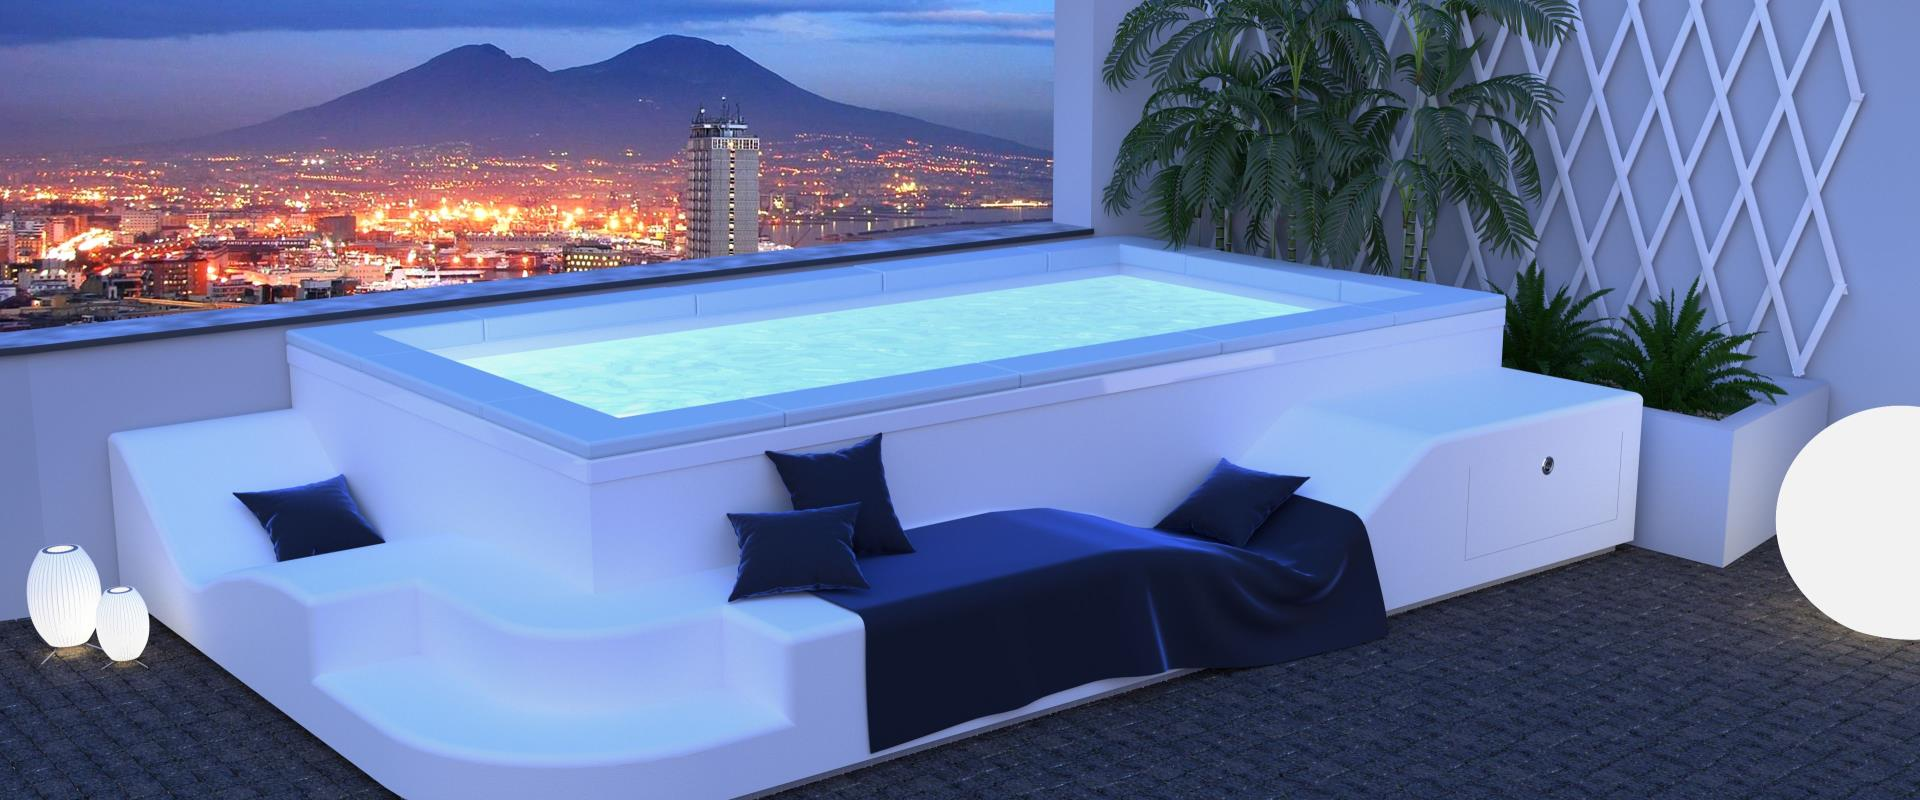 From the end of May 2021 the hotel''s customers can enjoy a refreshing bath in the new mini-pool, located in the Solarium, with magnificent views of the Gulf of Naples.